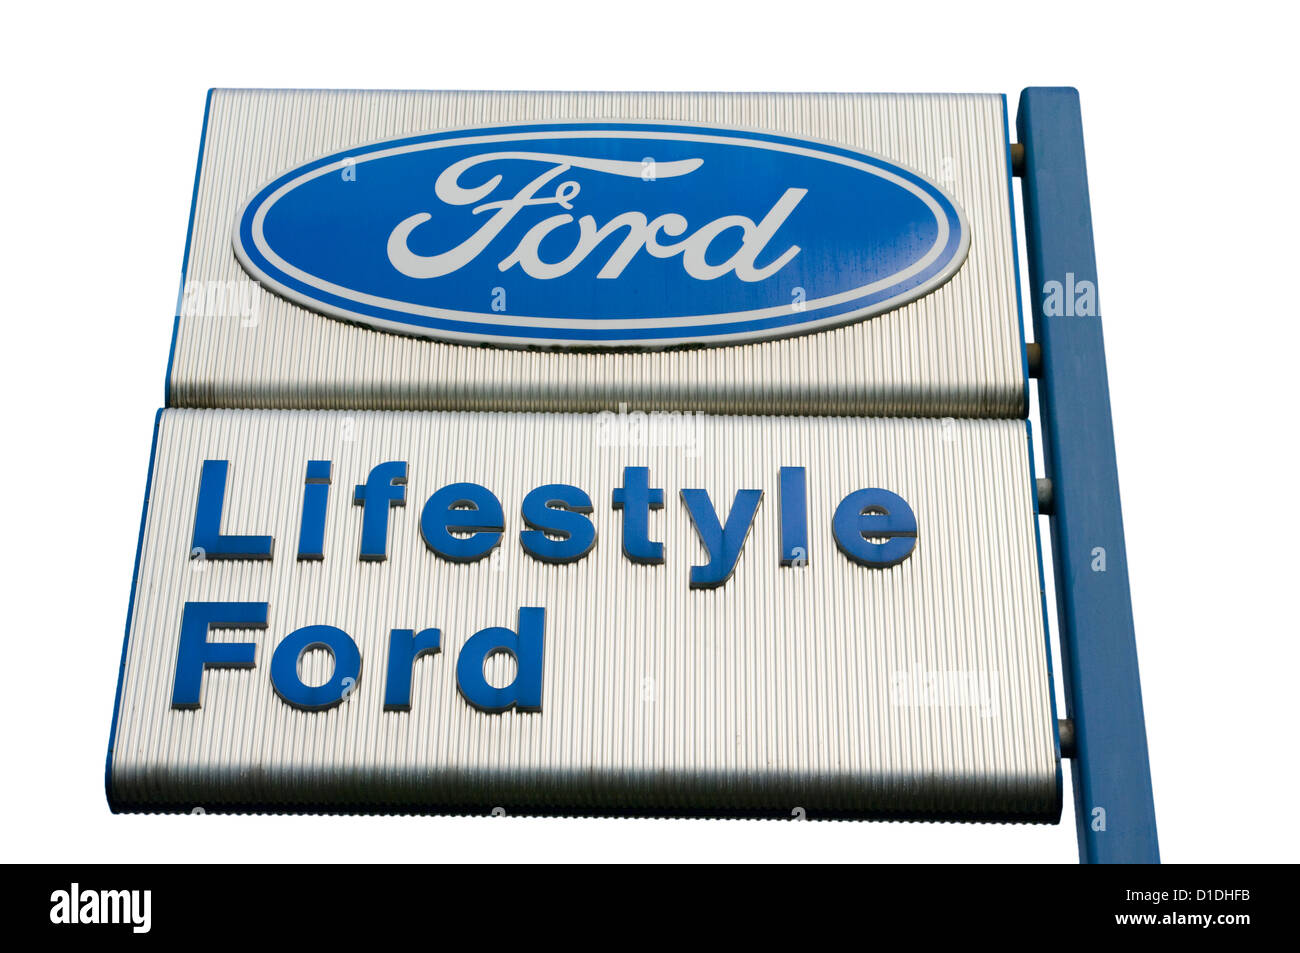 Ford Car Dealers Sign  sc 1 st  Alamy & Ford Car Dealers Sign Stock Photo Royalty Free Image: 52544895 ... markmcfarlin.com